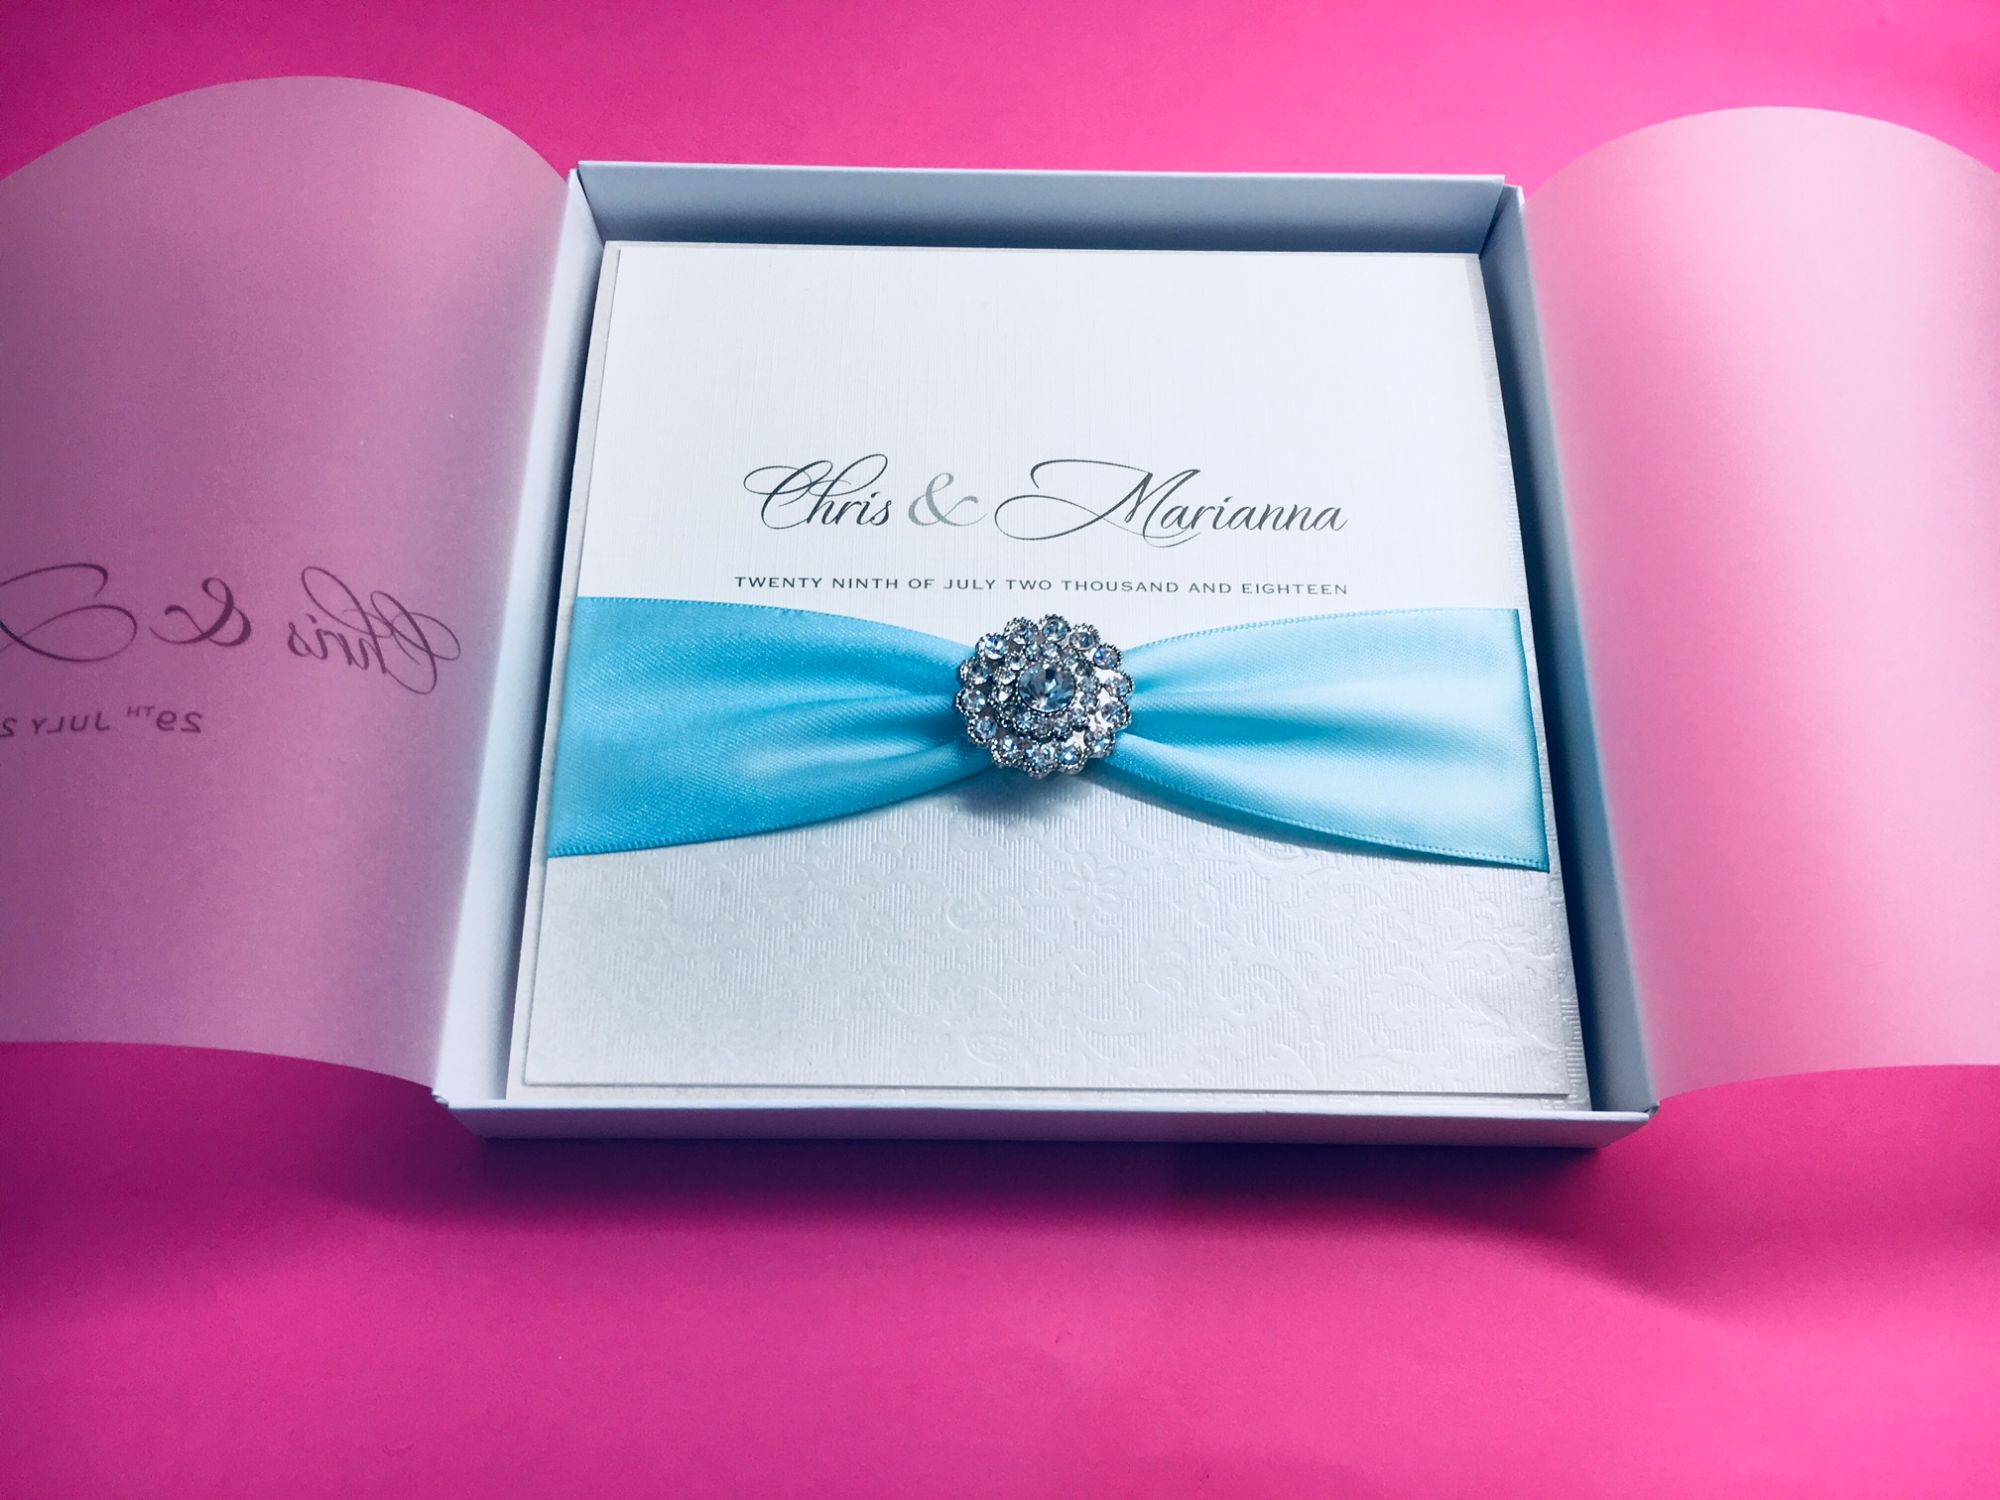 Romance collection boxed invitation with sparkly vintage brooch